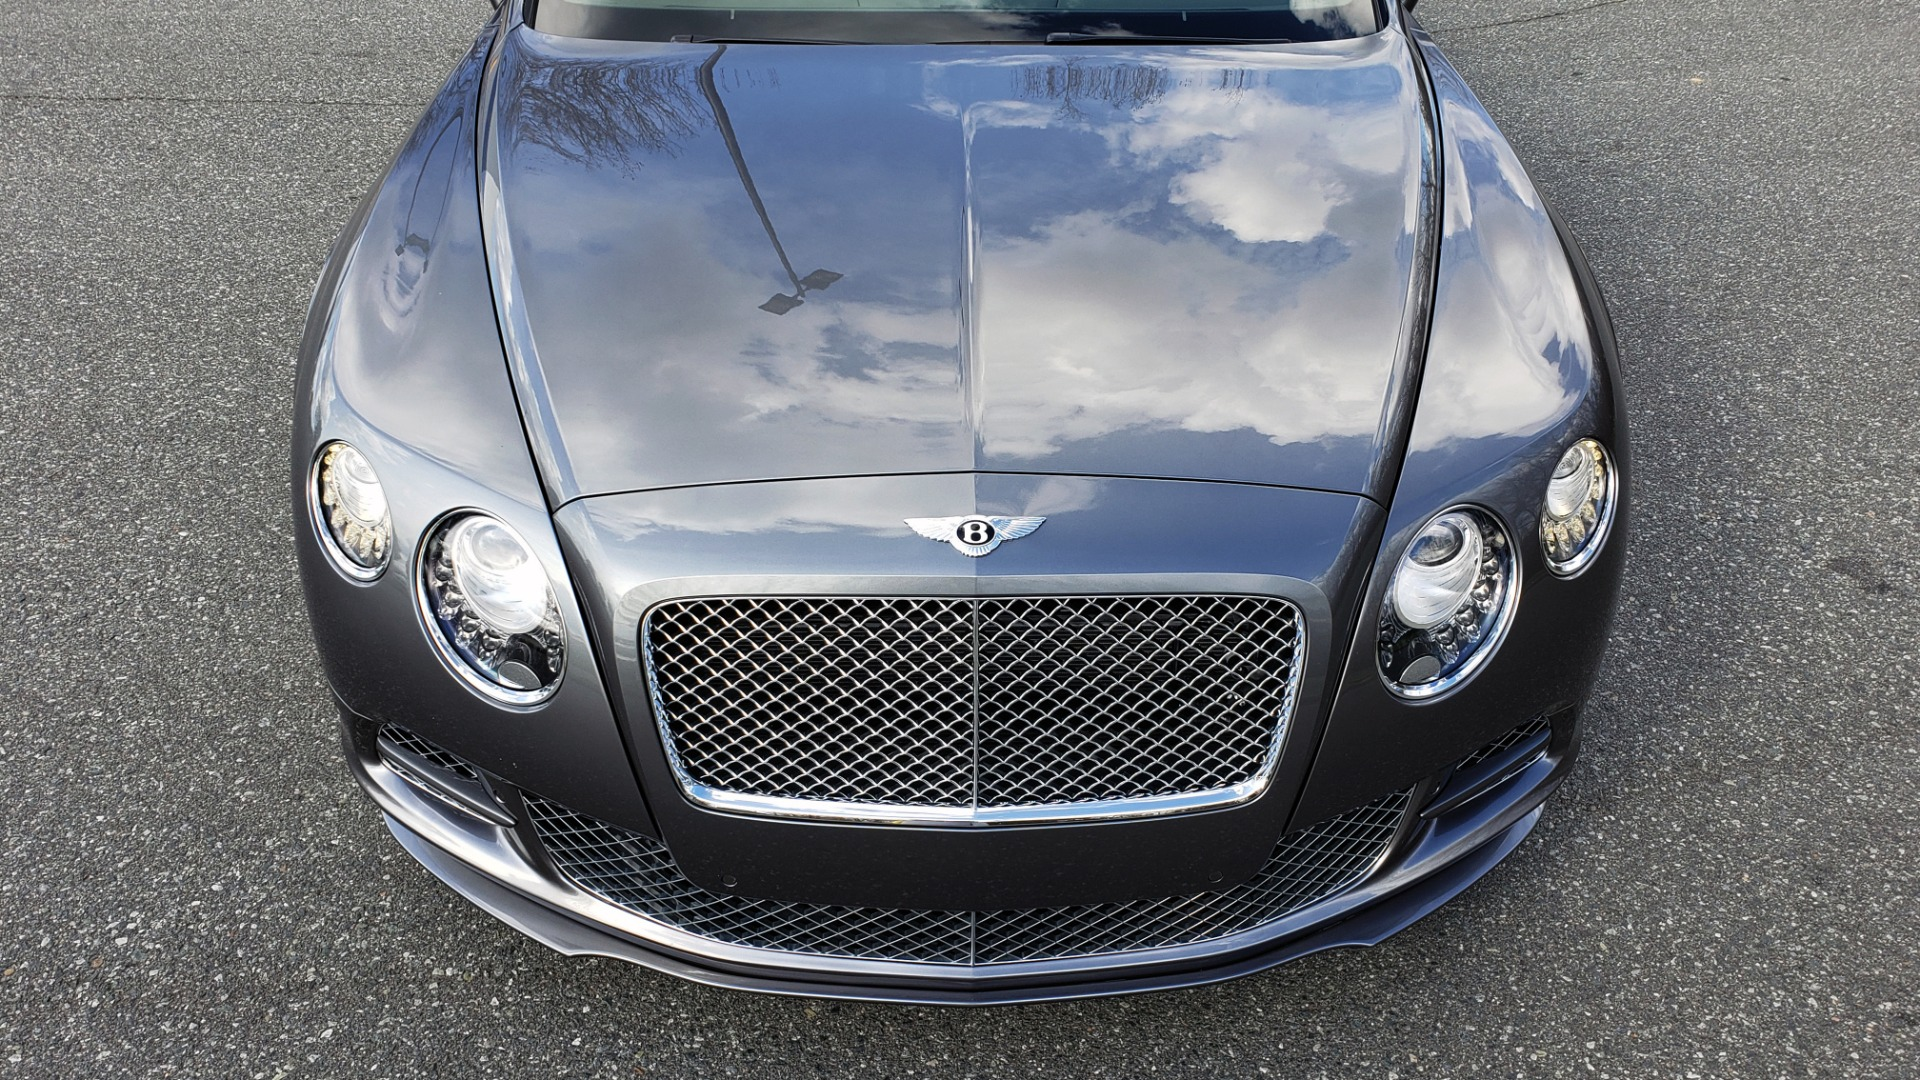 Used 2015 Bentley CONTINENTAL SPEED CONV / 6.0L W12 / NAV / VENT SEATS / REARVIEW for sale Sold at Formula Imports in Charlotte NC 28227 29